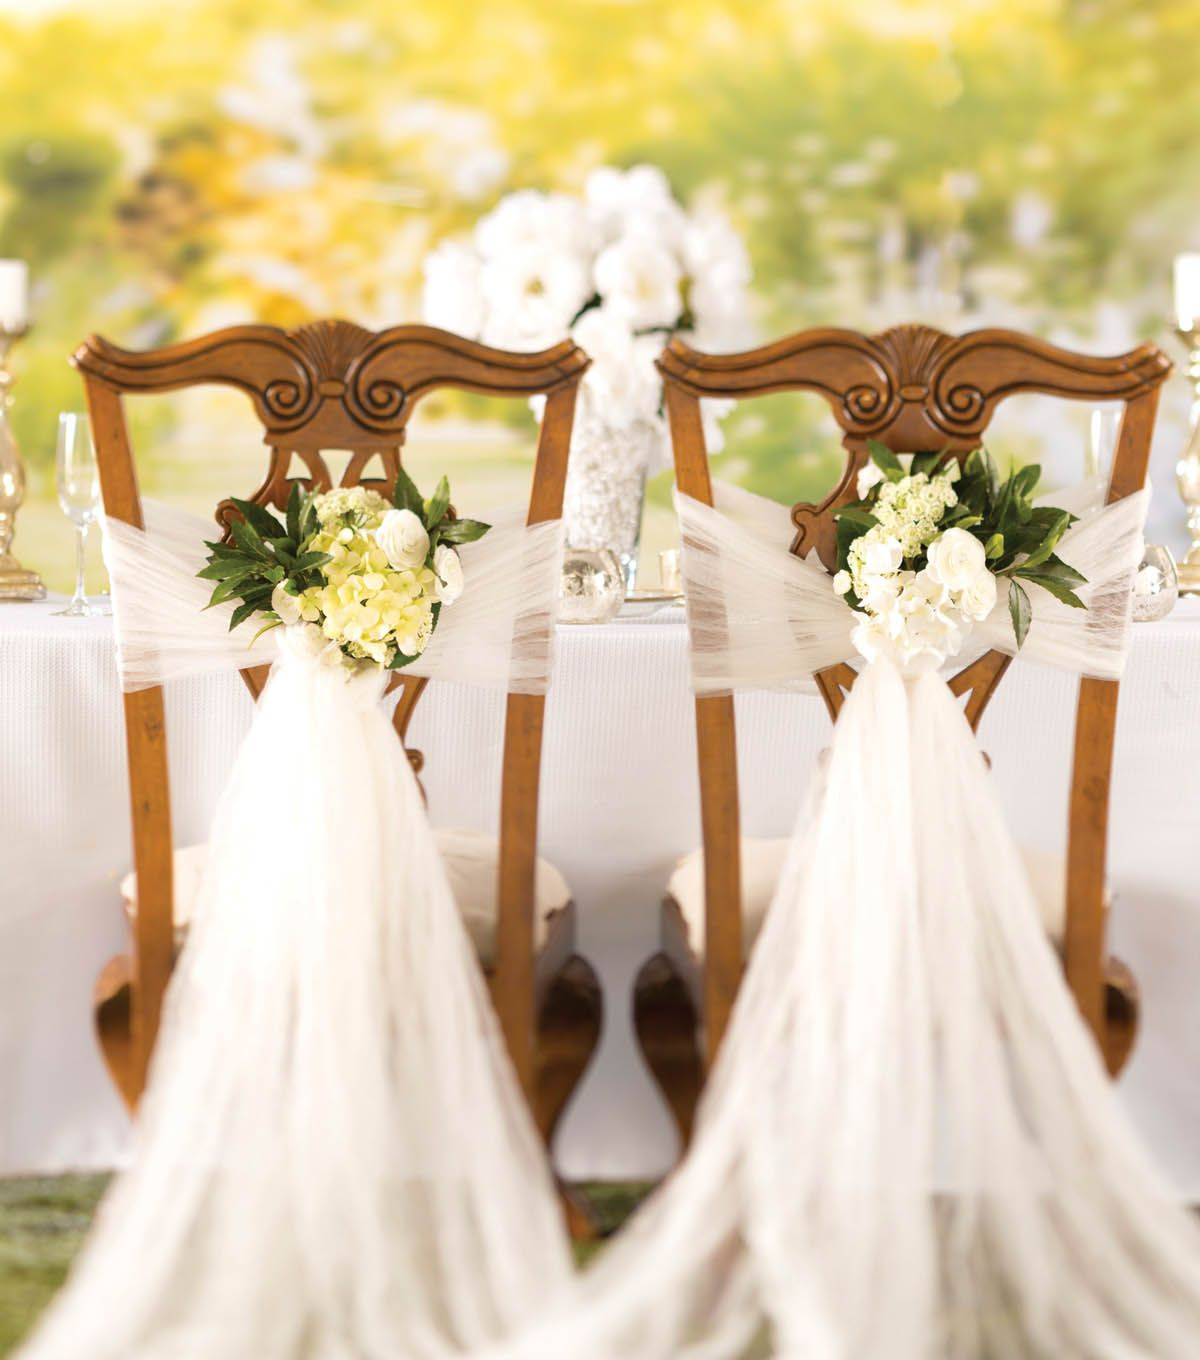 tulle chair covers for wedding ergonomic adjustable lumbar support how to make a crushed décor diy